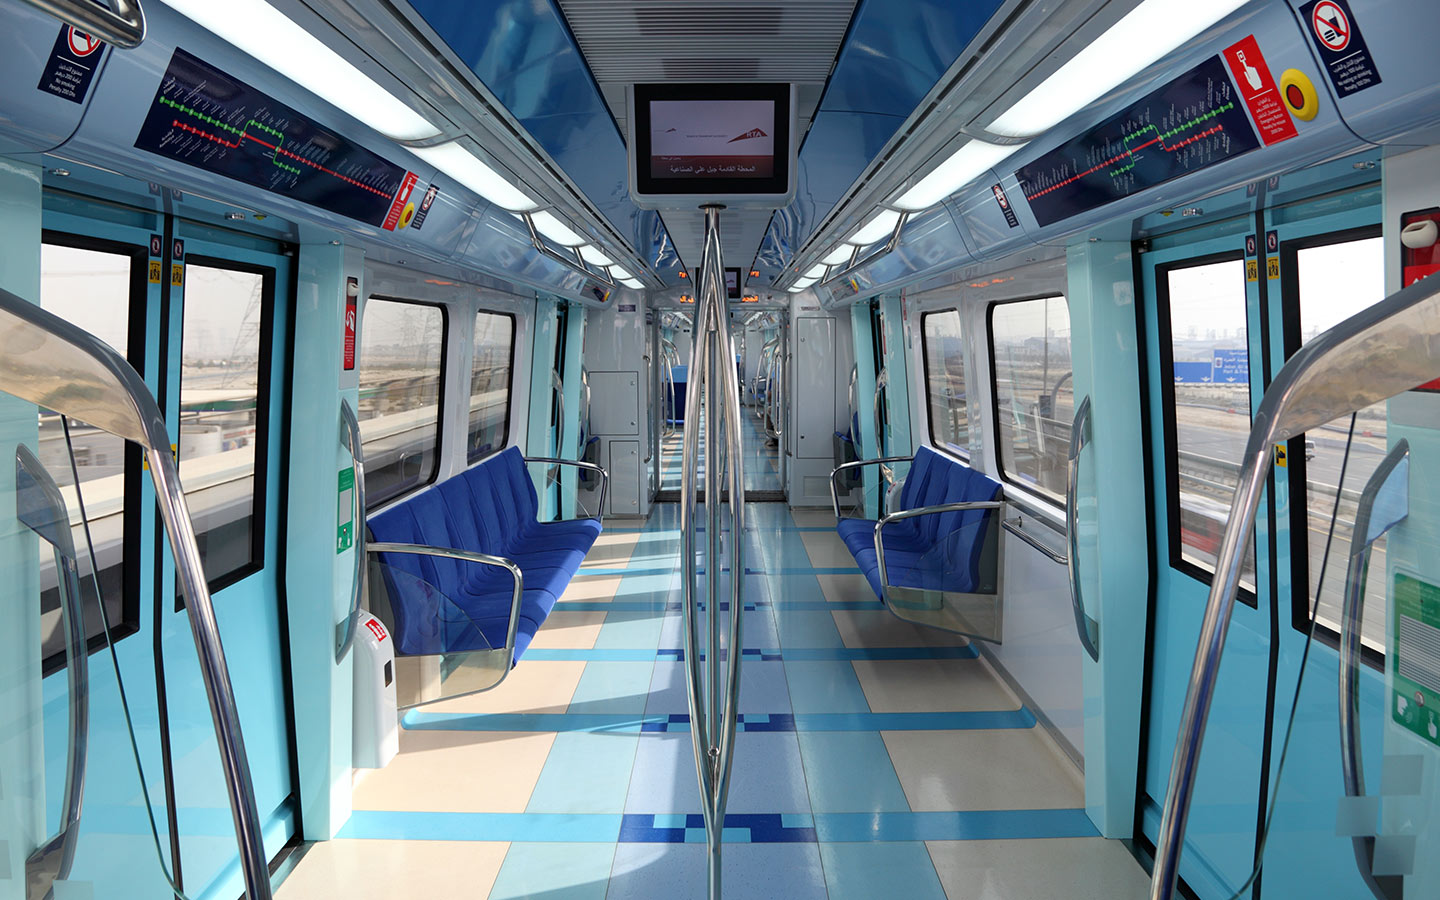 Inside view of the Metro Cabin in the Dubai Metro